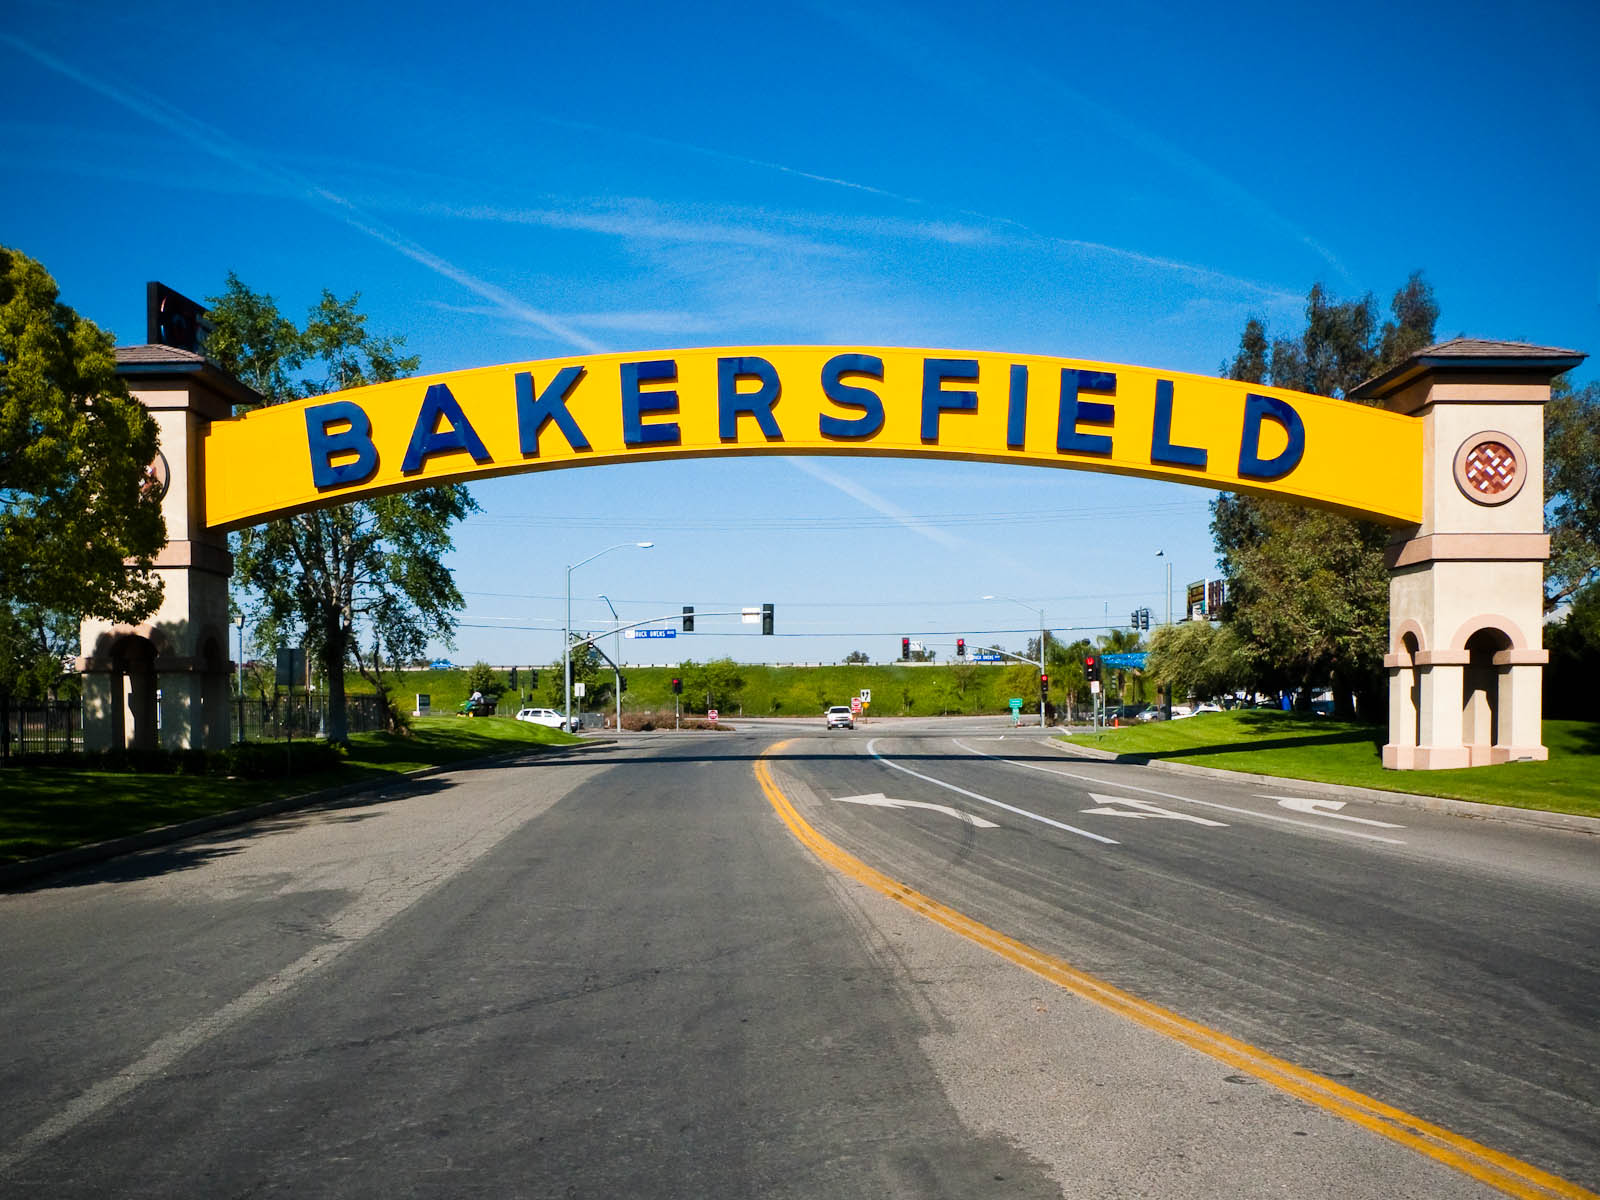 Bakersfield California City Sign